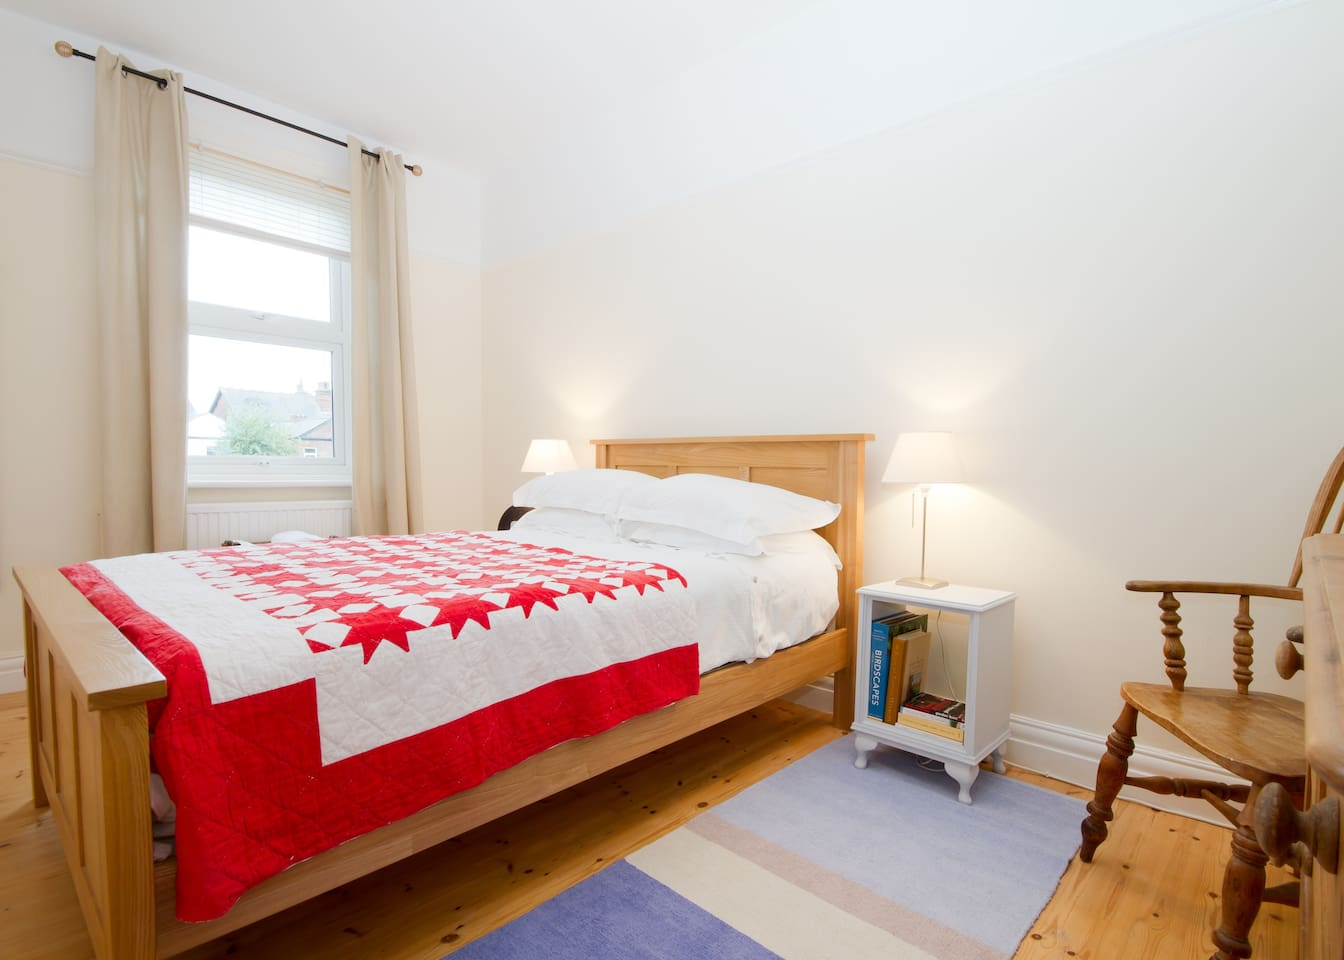 Double room, very quiet and overlooks the back garden. Delicious breakfast included.